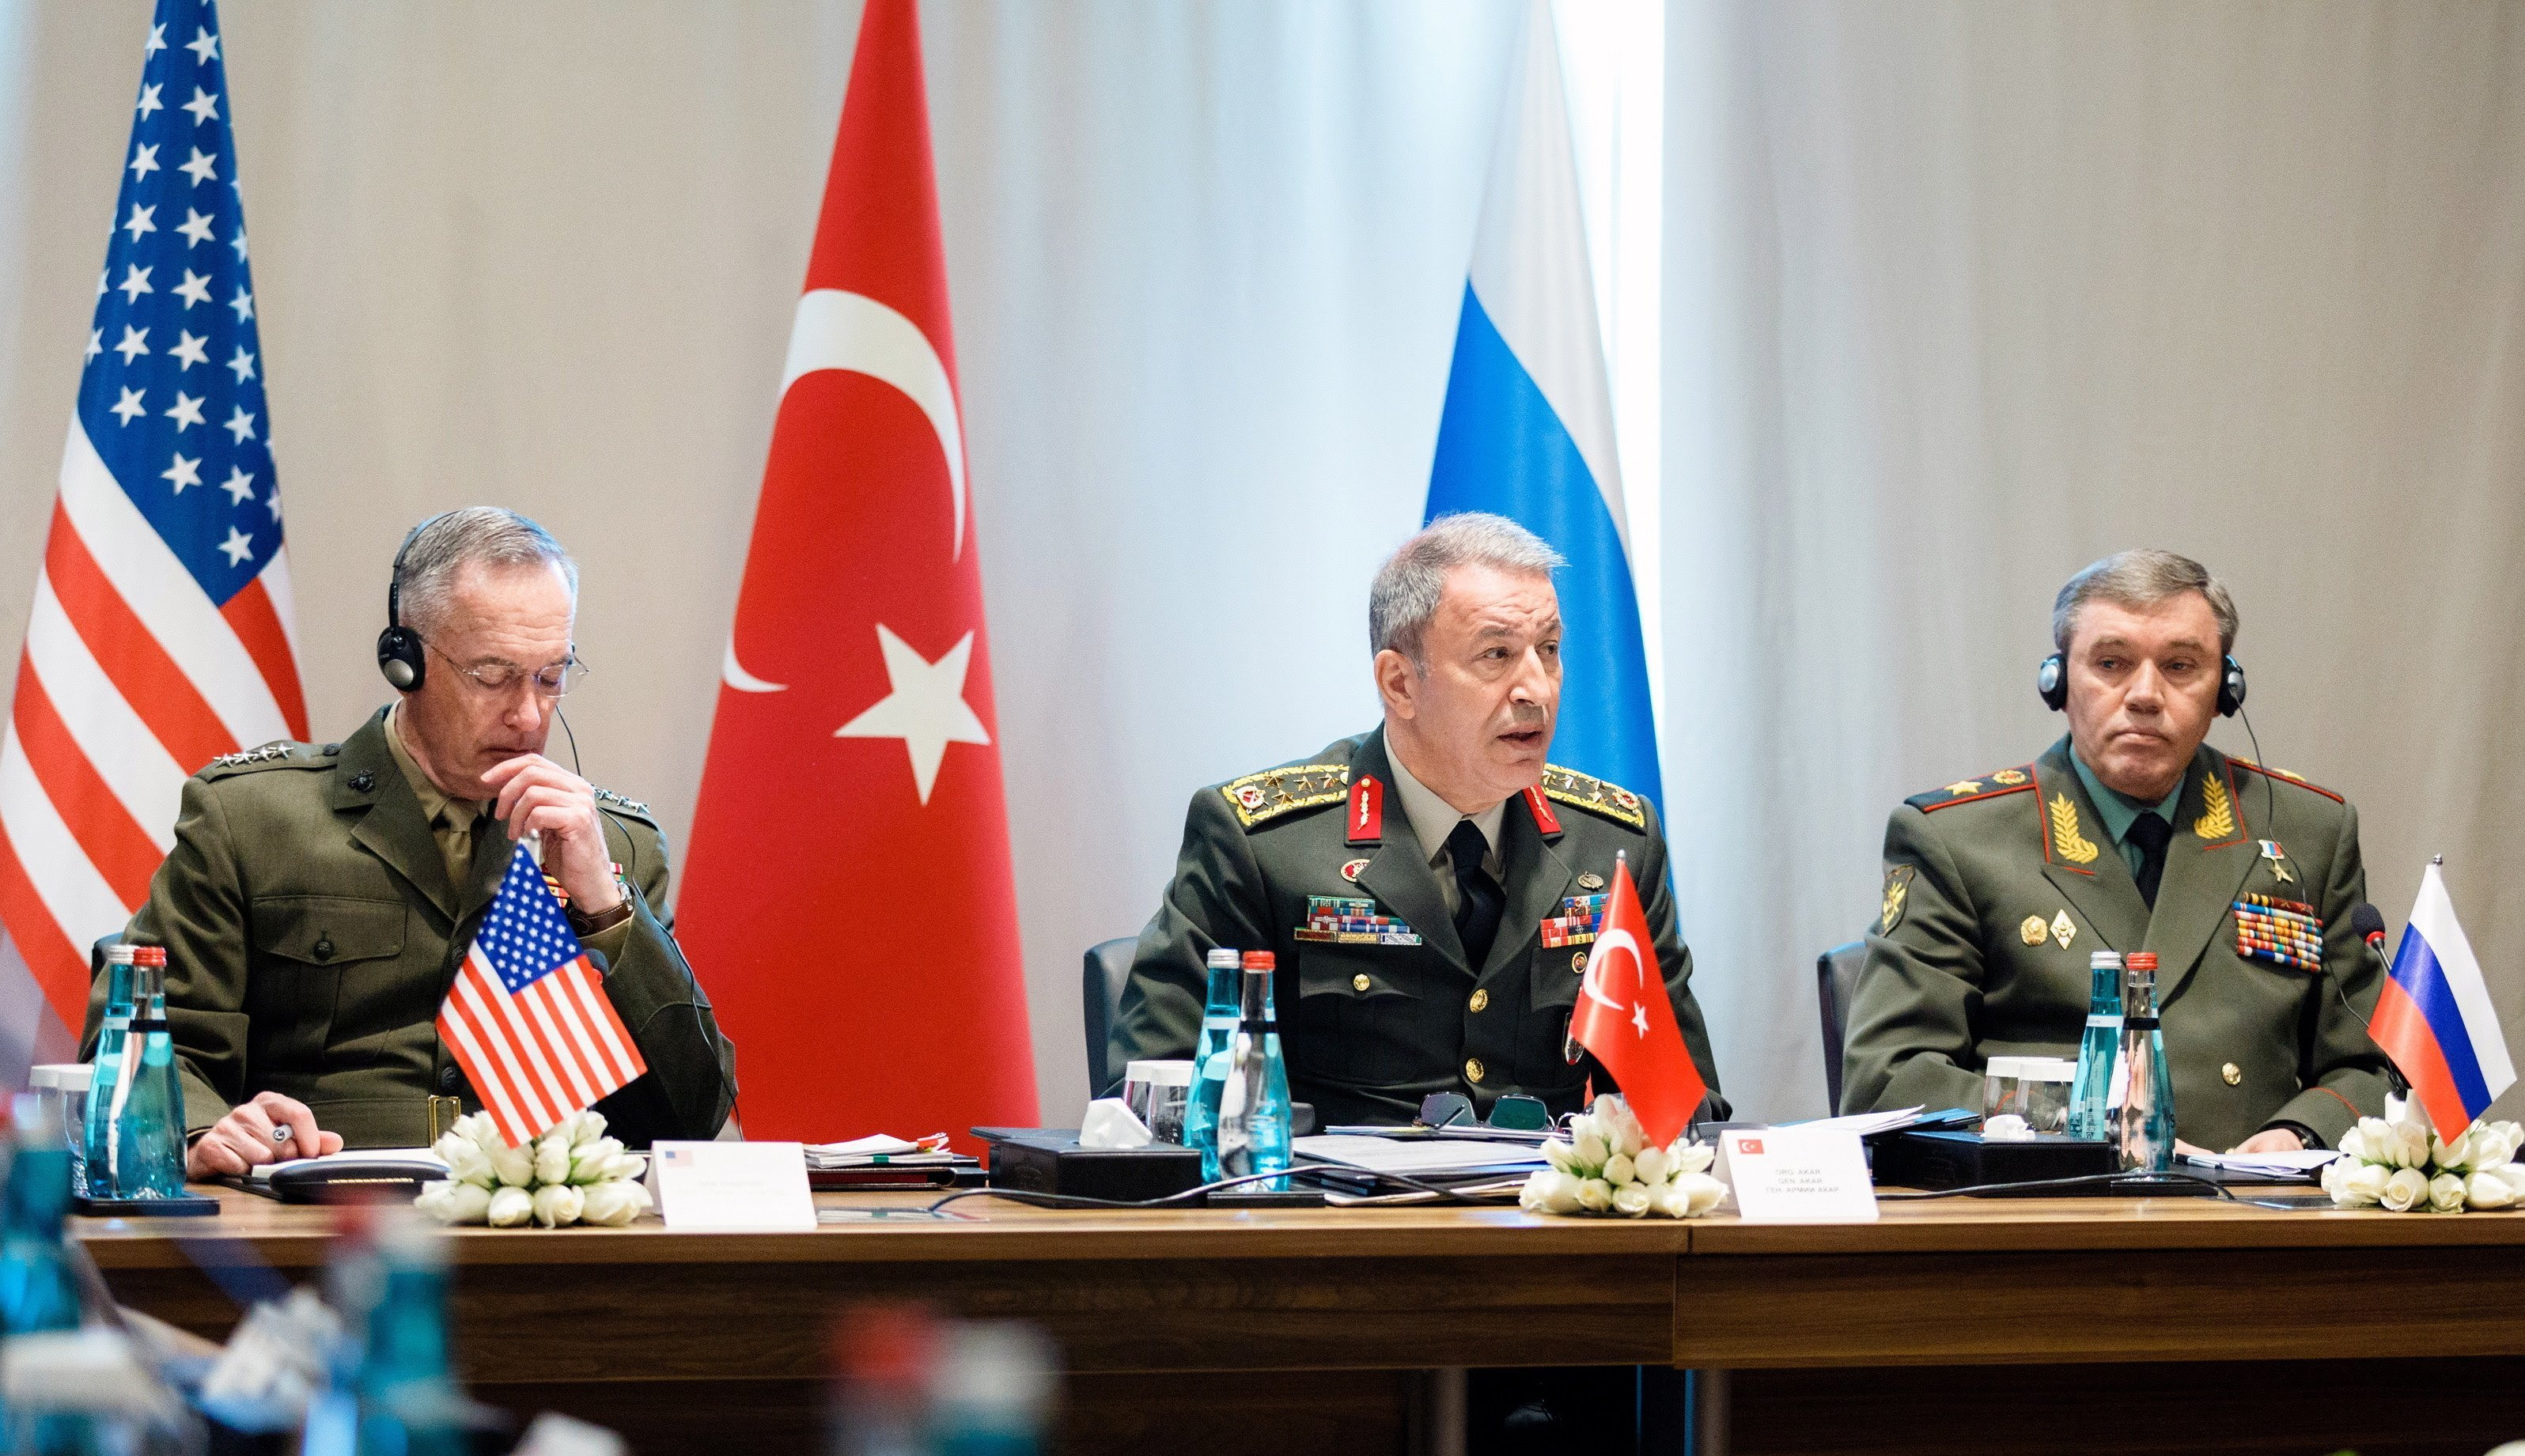 Joint Chiefs Chairman Gen. Joseph Dunford Jr. with his Turkish and Russian counterparts, Gens. Hulusi Akar and Valery Gerasimov, March 7.